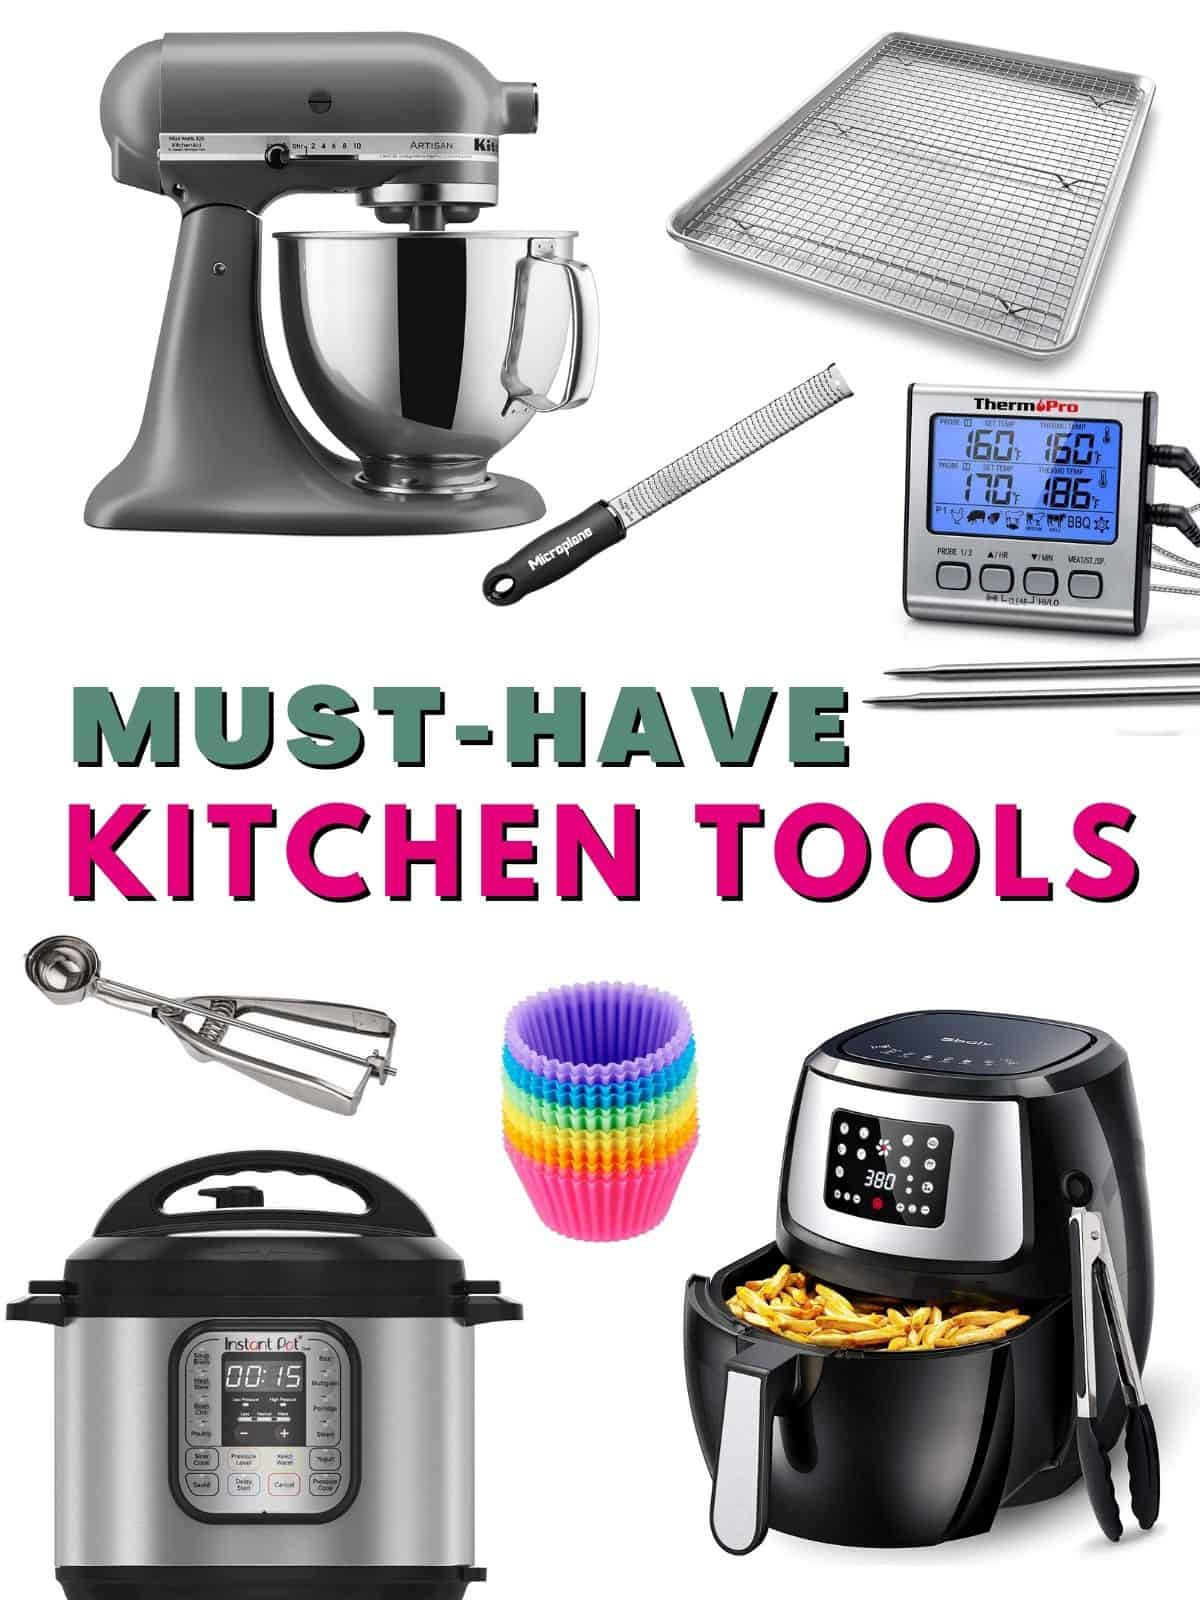 This is the ultimate guide to all my favorite kitchen essentials. From countertop appliances to tools, to pots and pans, these are my favorite kitchen products!